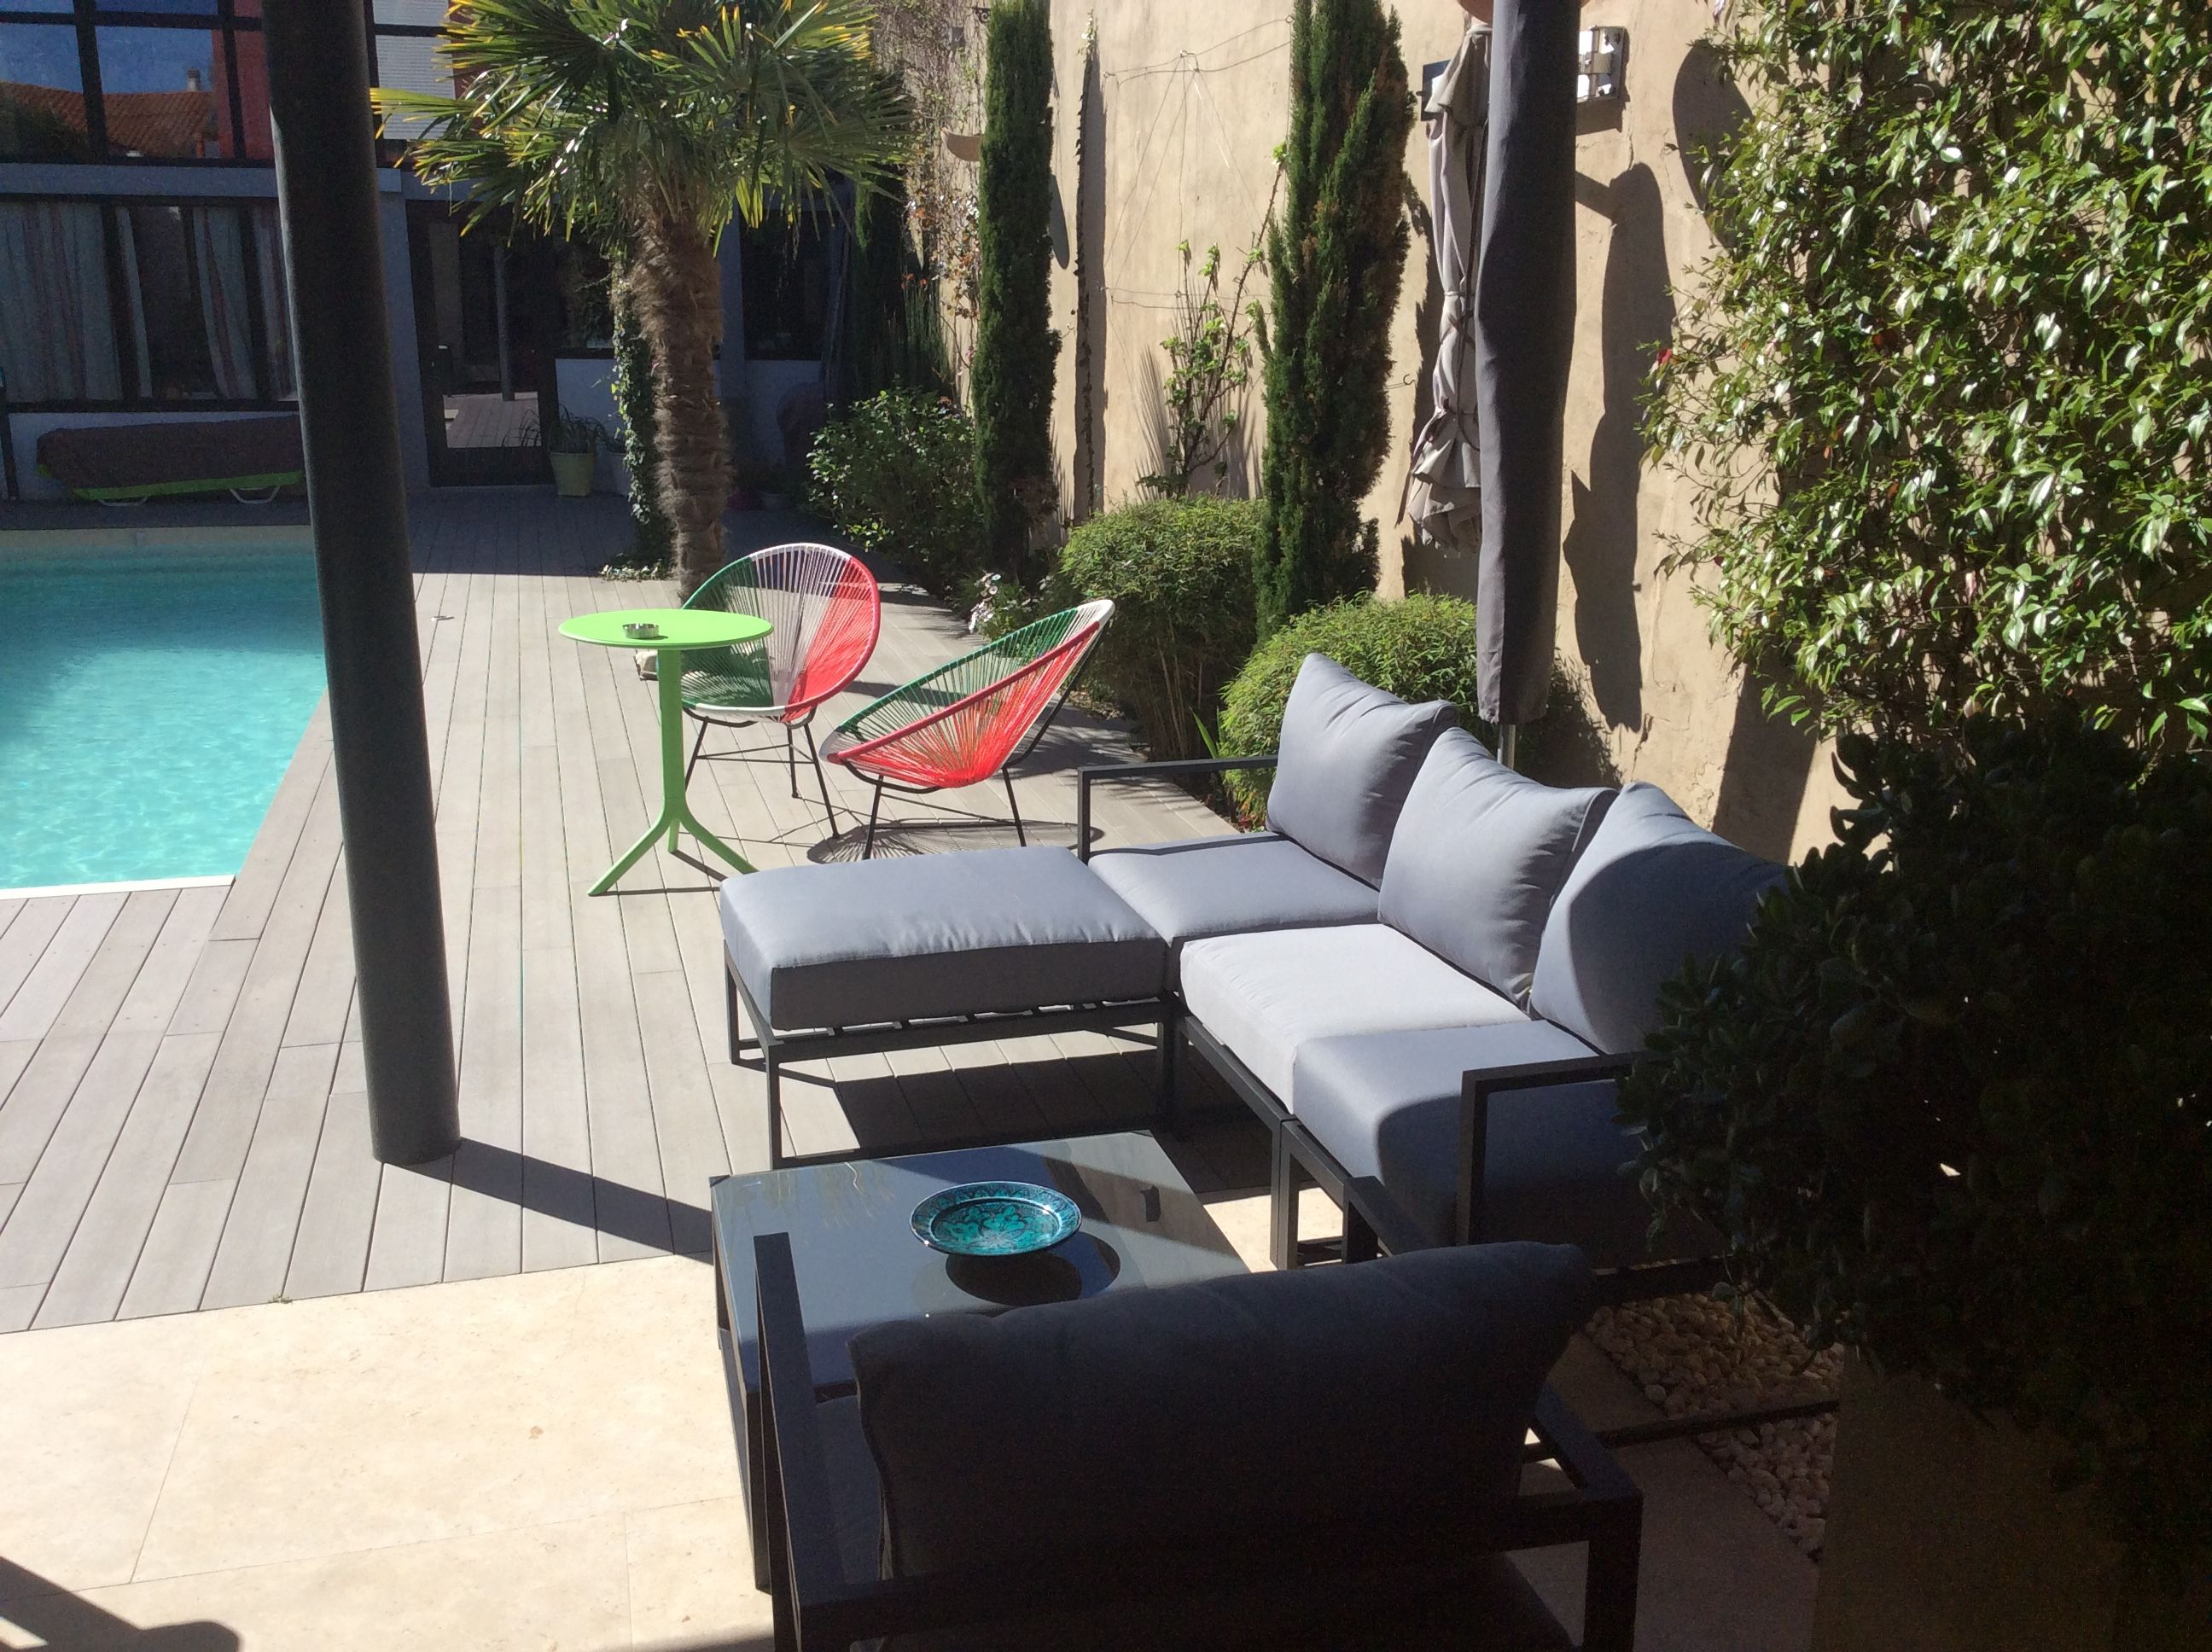 Assise Salon De Jardin Acatium Salon De Jardin 5 Places En Aluminium Confort